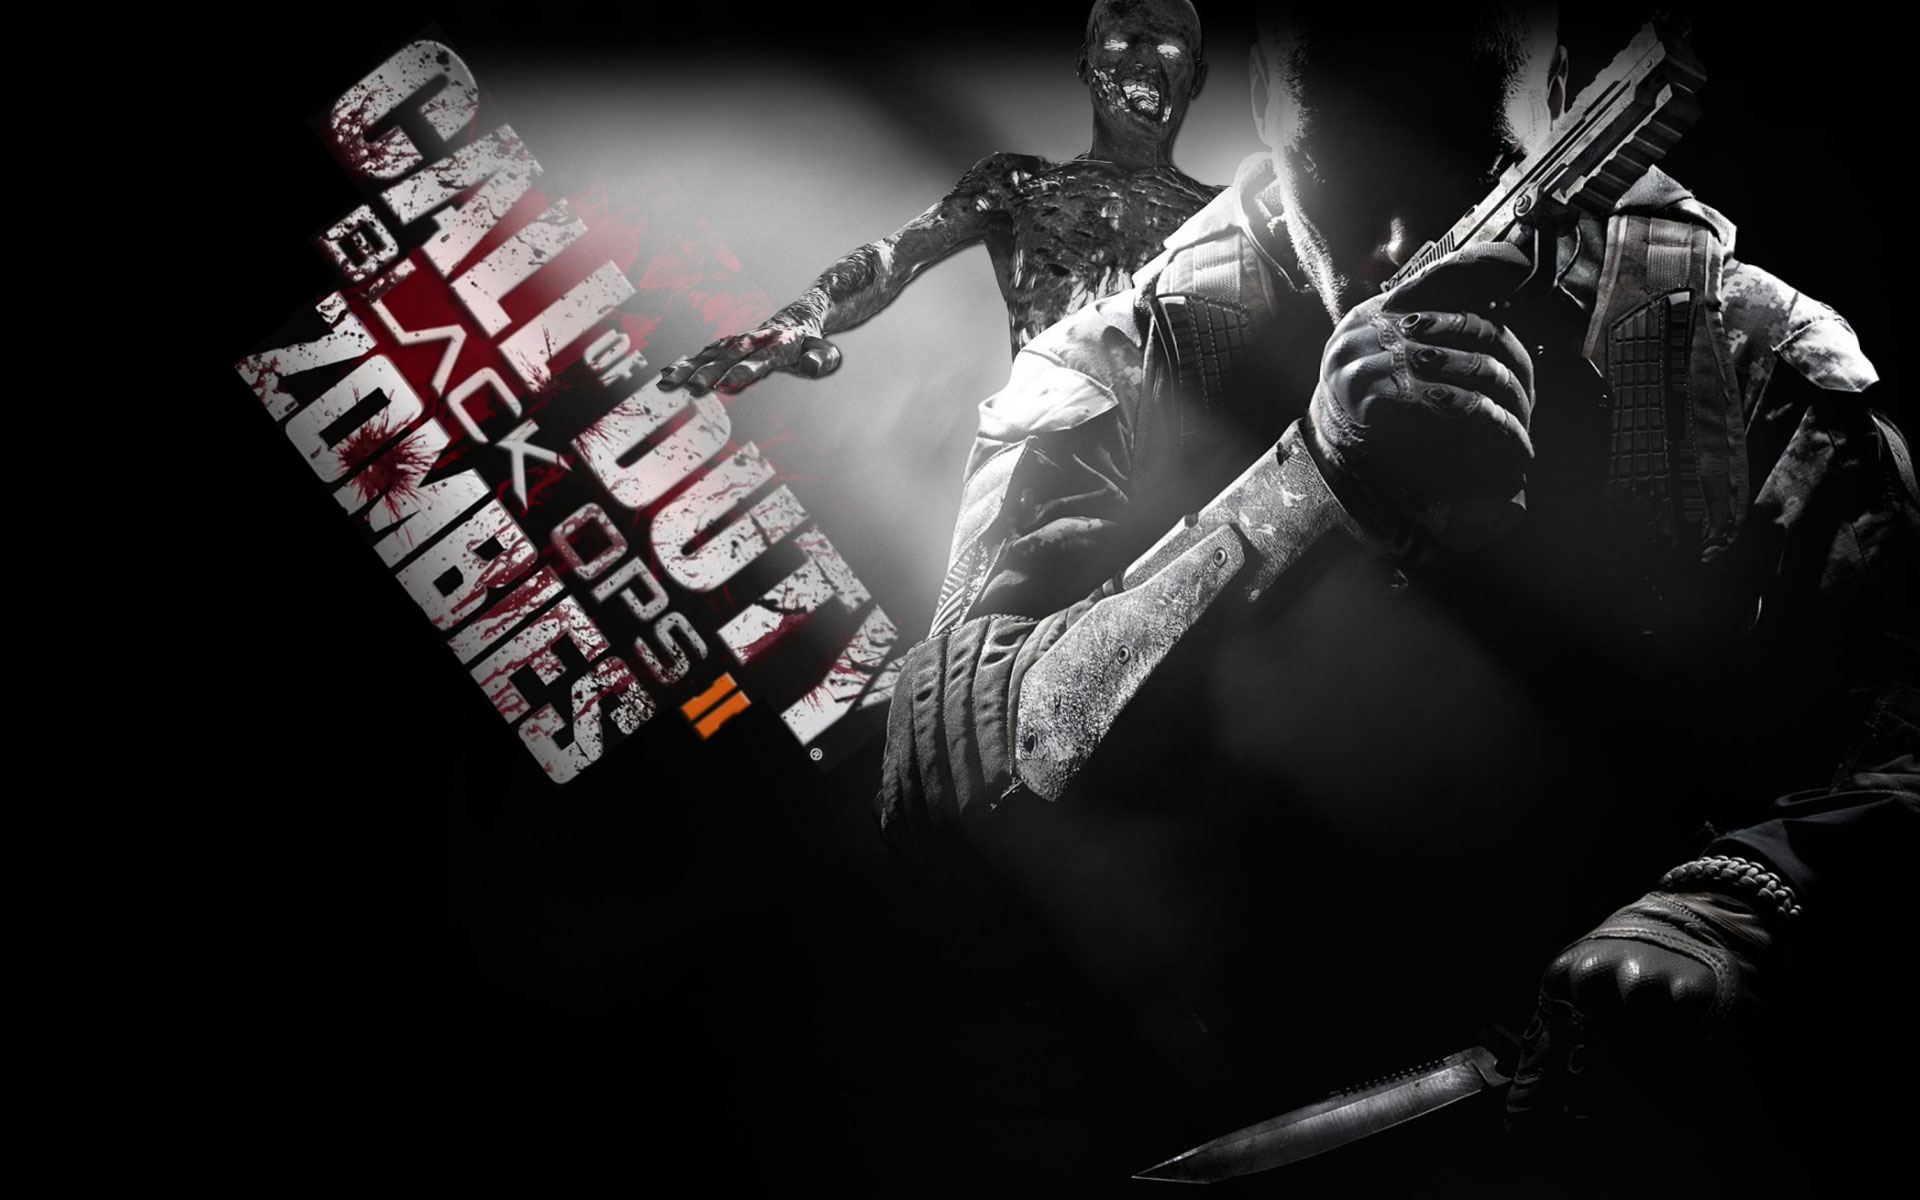 black ops zombies wallpaper - photo #38